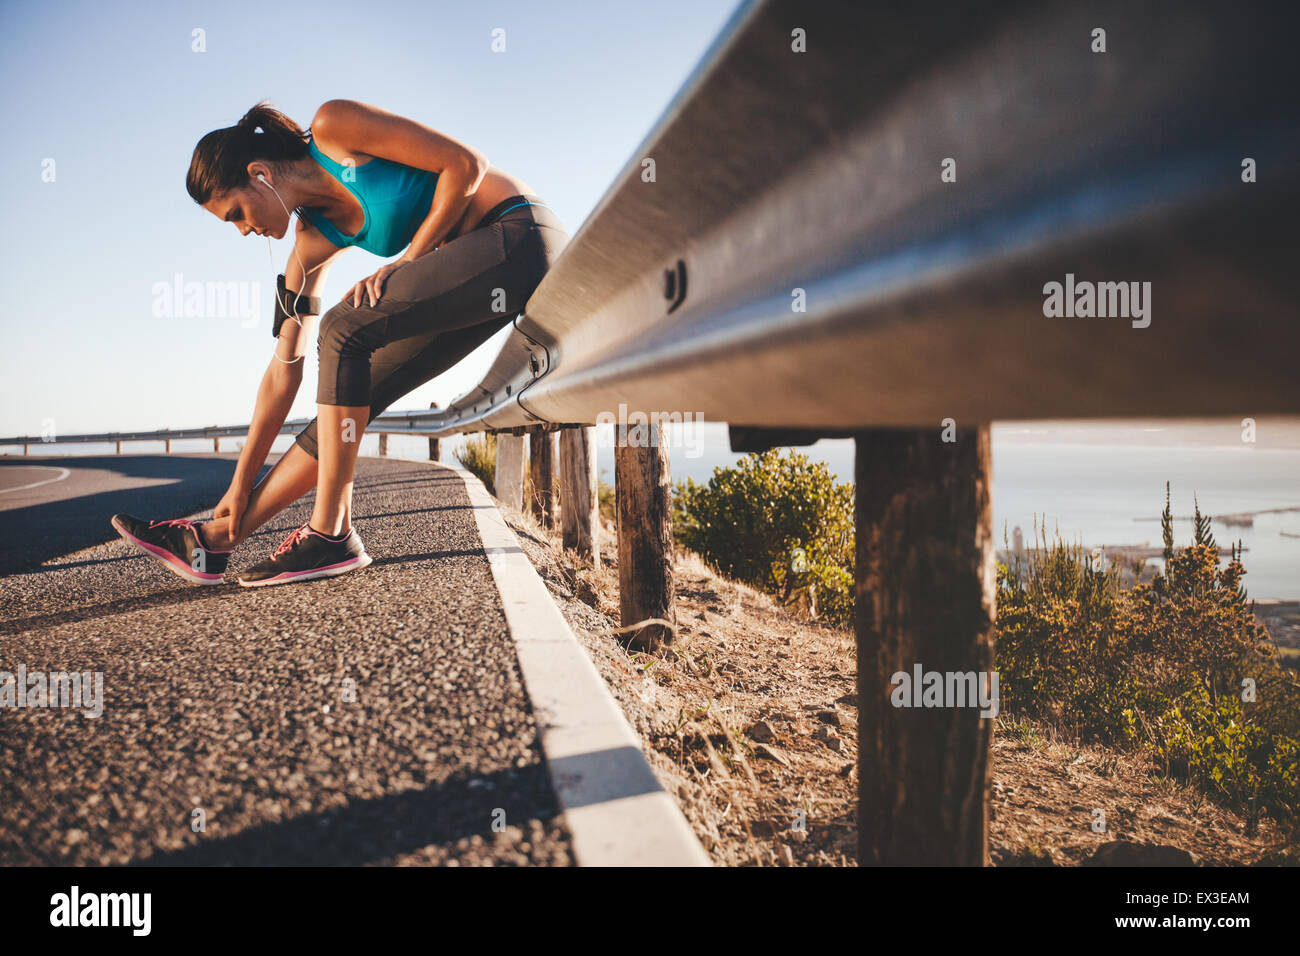 Sports woman stretching her leg after running outdoors. Female athlete taking break after running training sitting - Stock Image